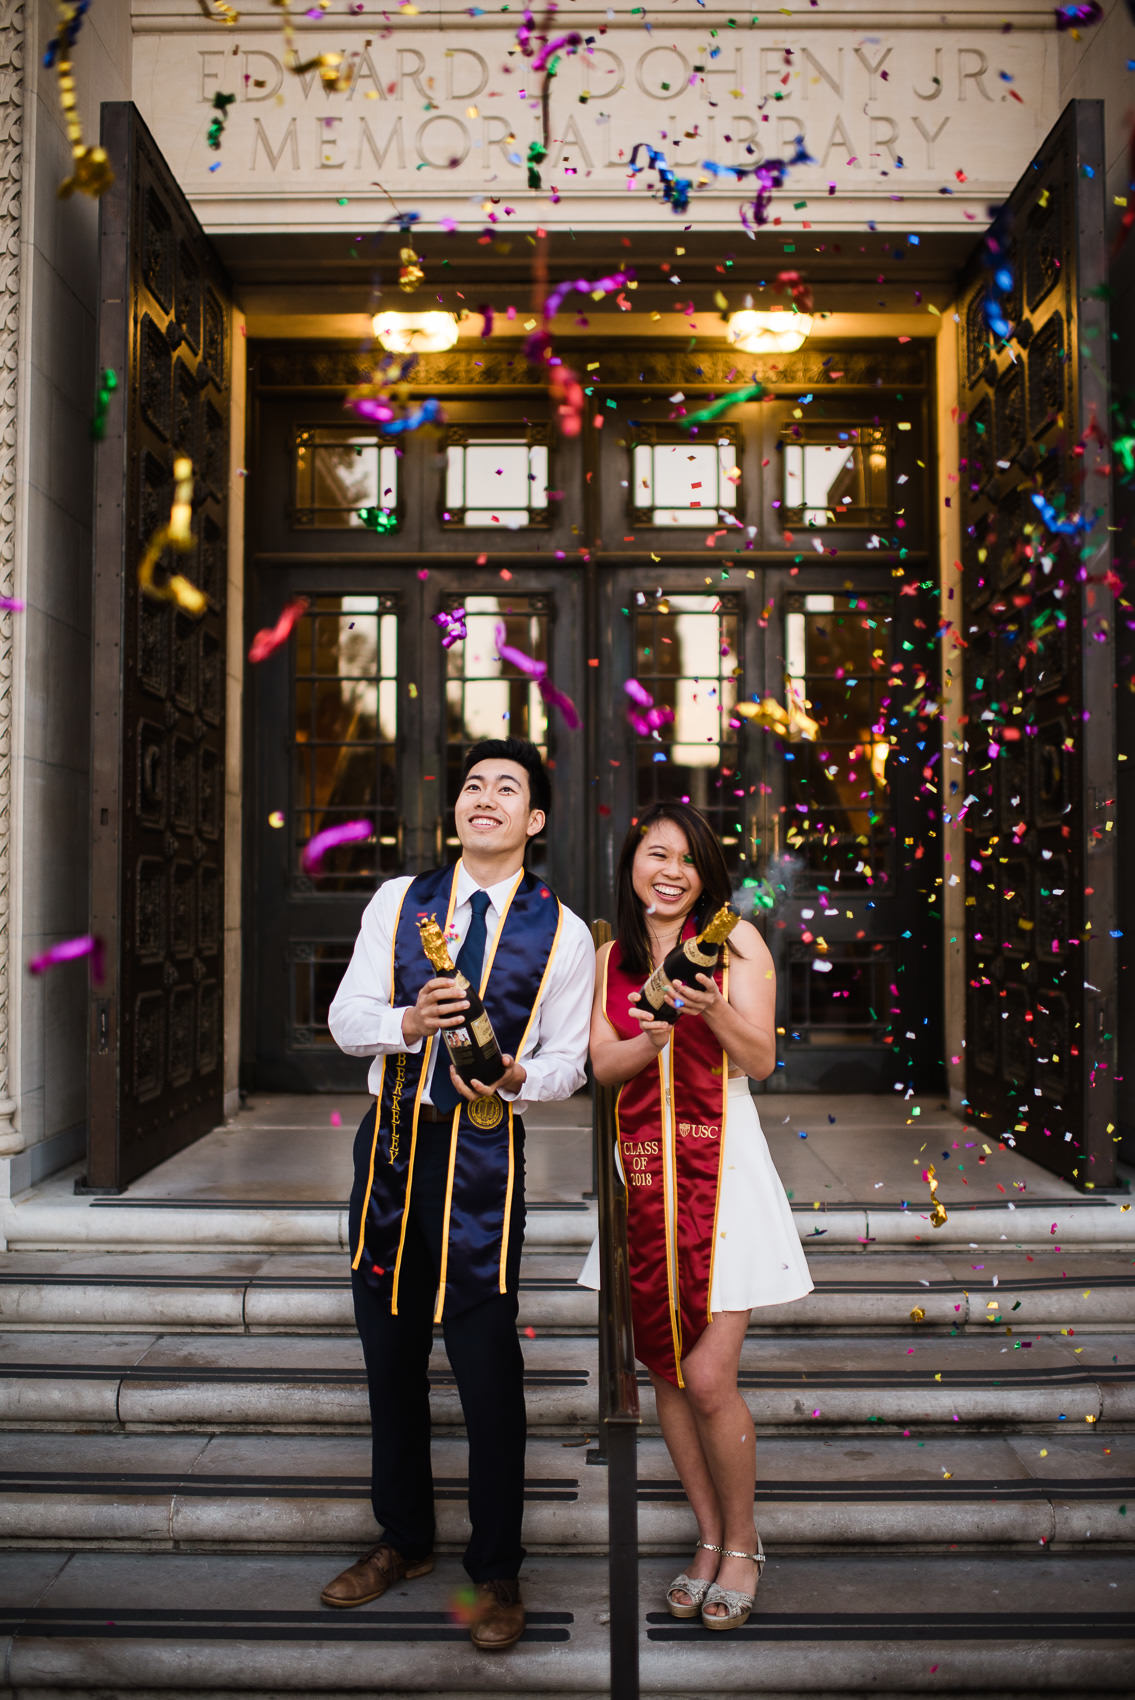 a couple celebrating their graduation with confetti poppers at usc and uc berkeley